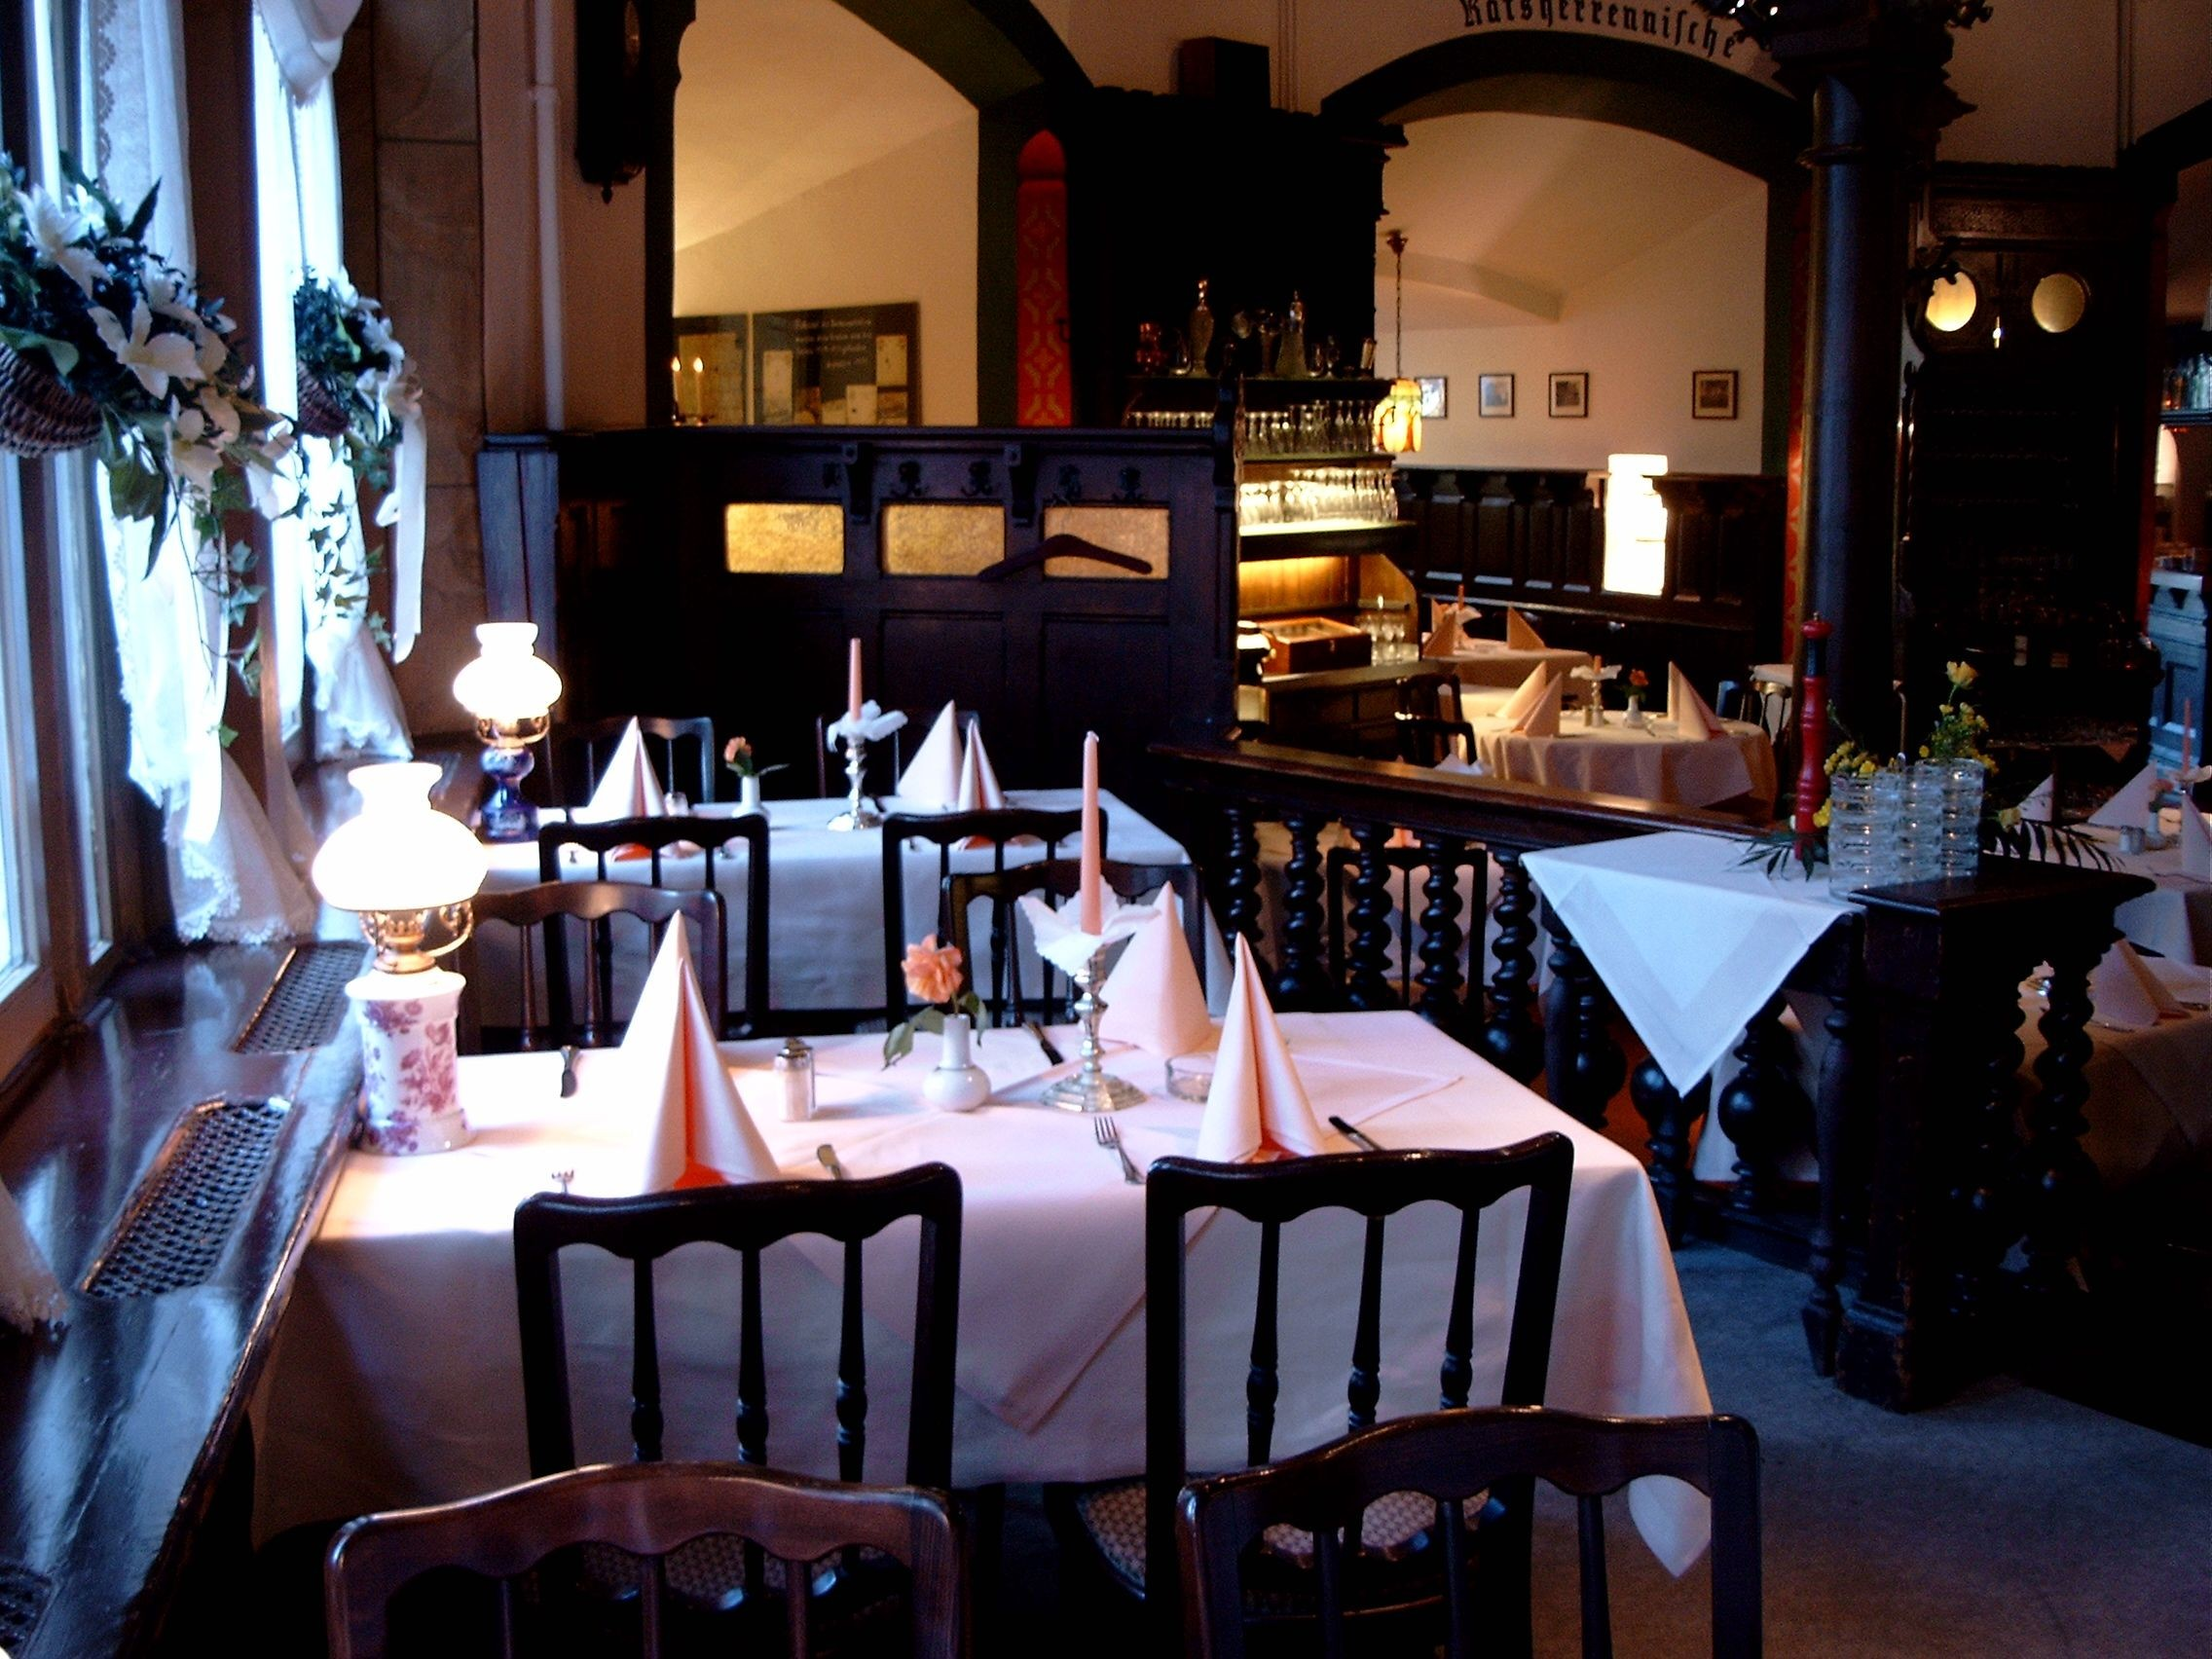 restaurants - goslar am harz, unesco-weltkulturerbe